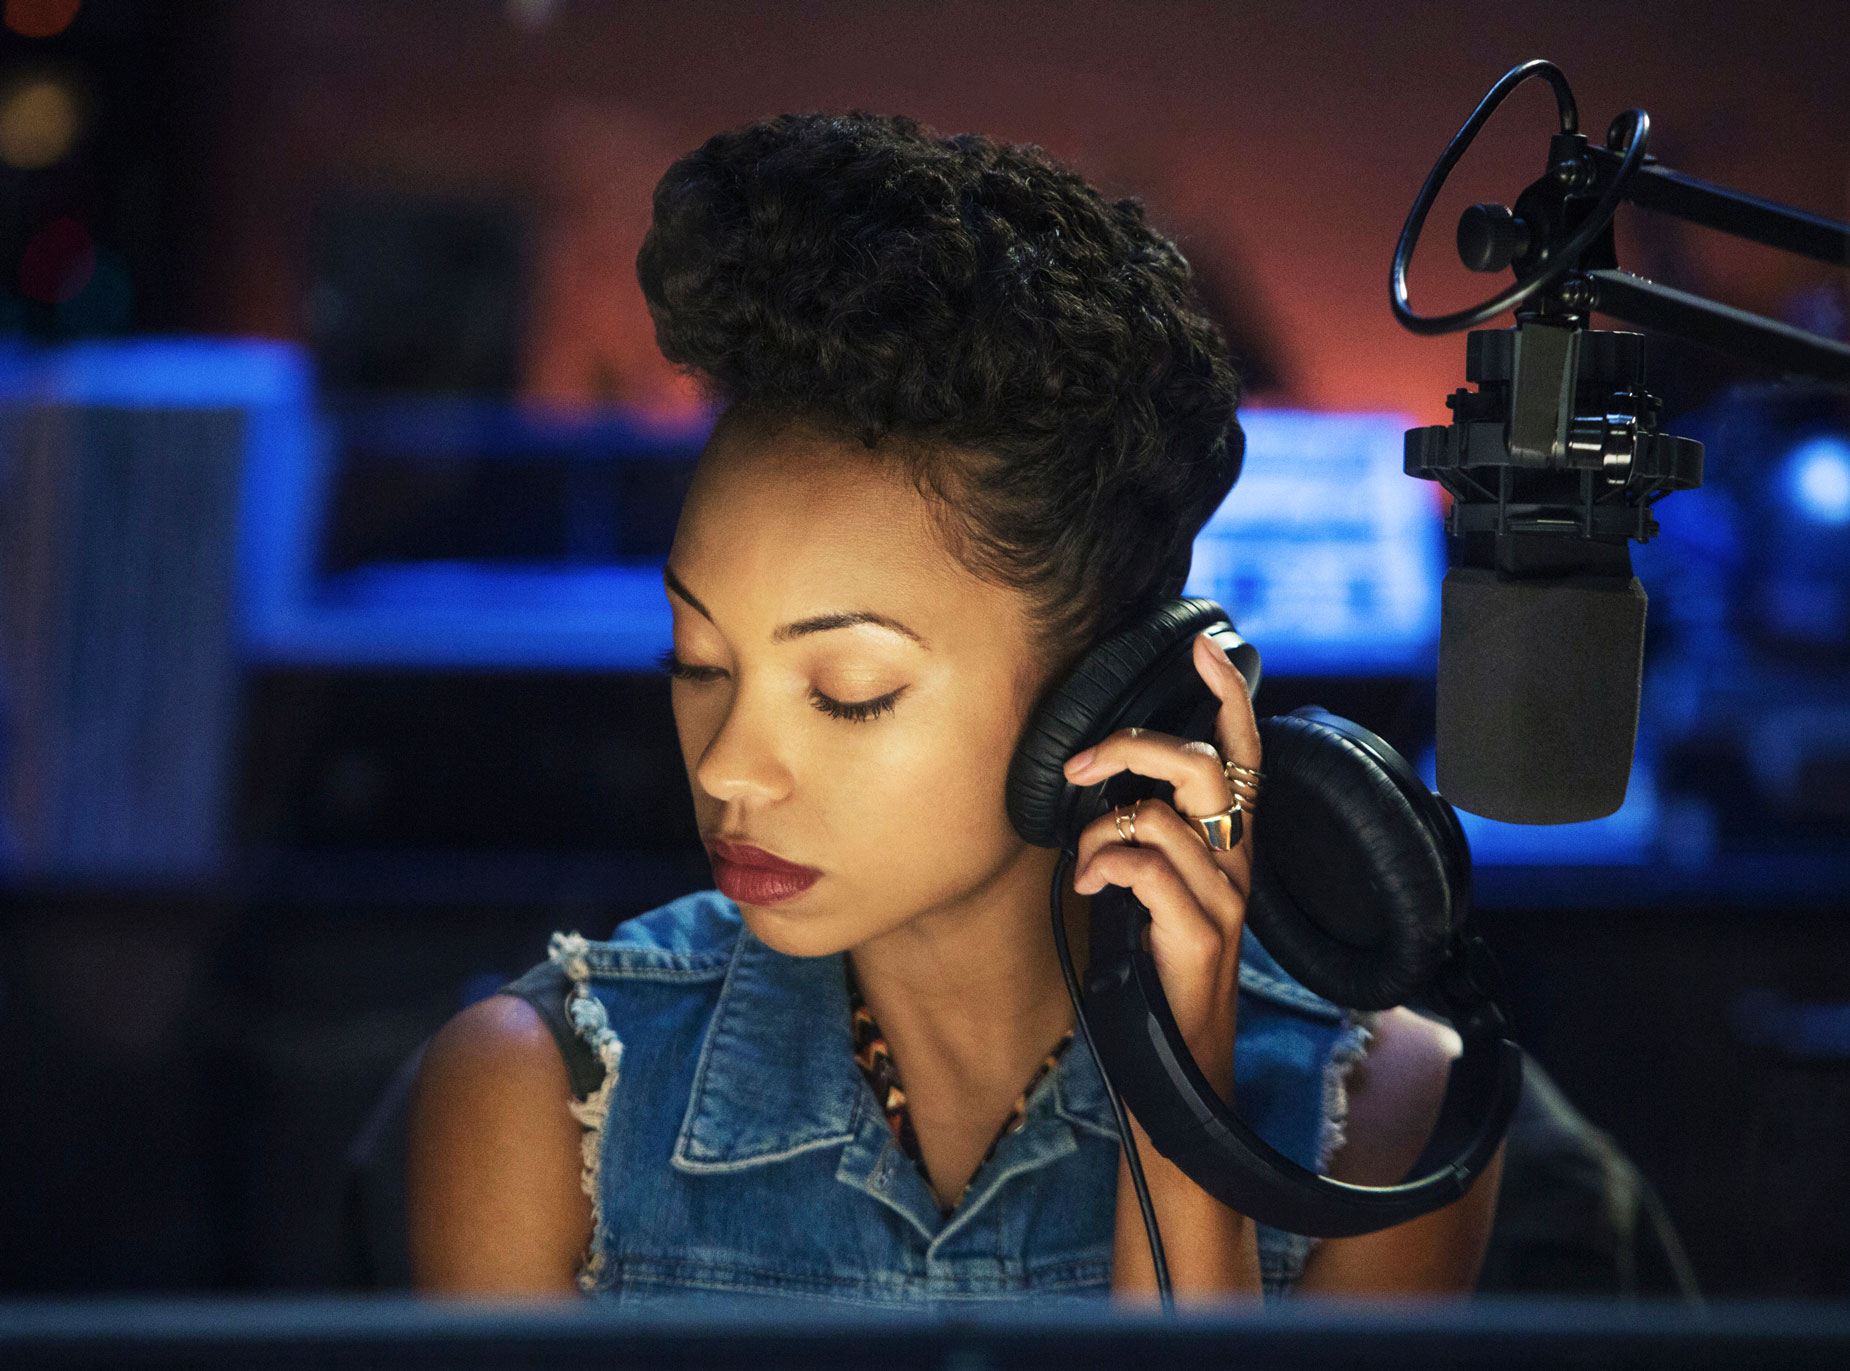 <em>Dear White People</em> Trailer Opens a Smart Dialogue About Racial Tensions and Comedy